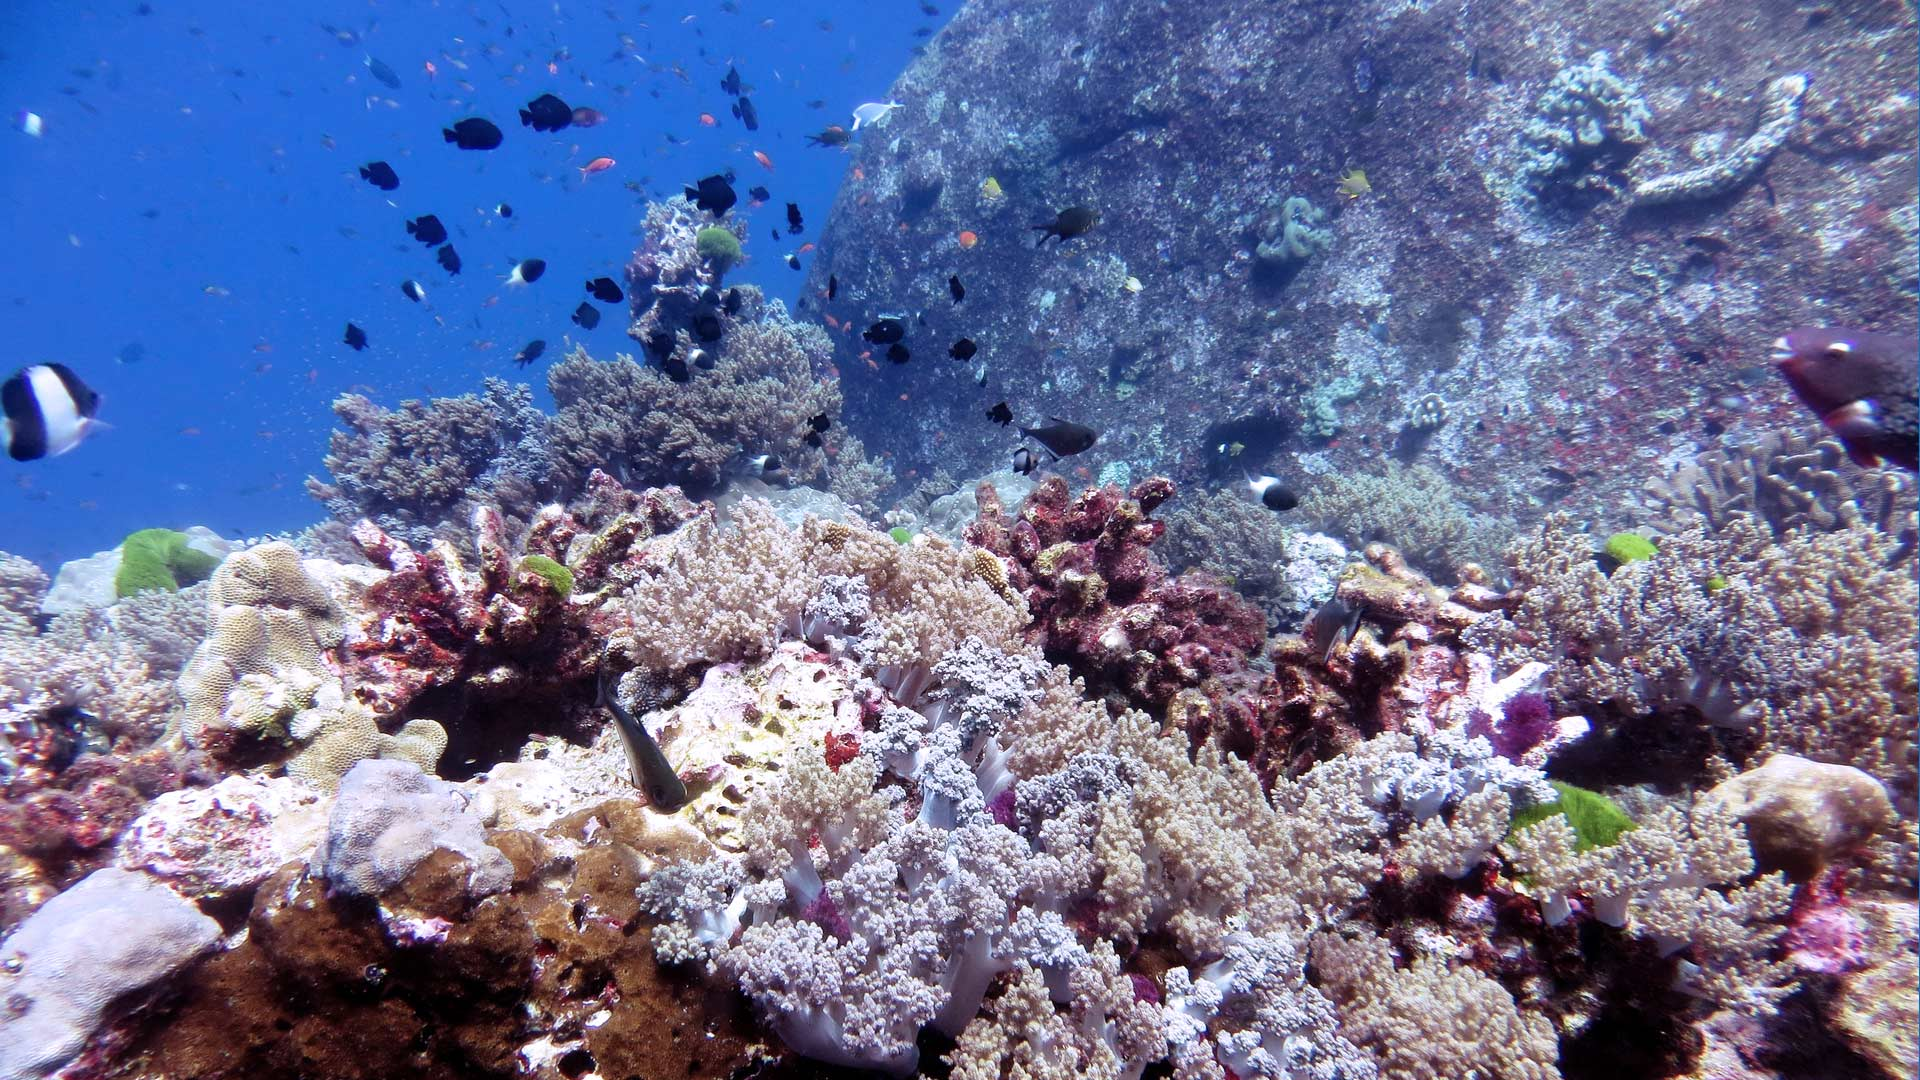 Read all about the coral reef science